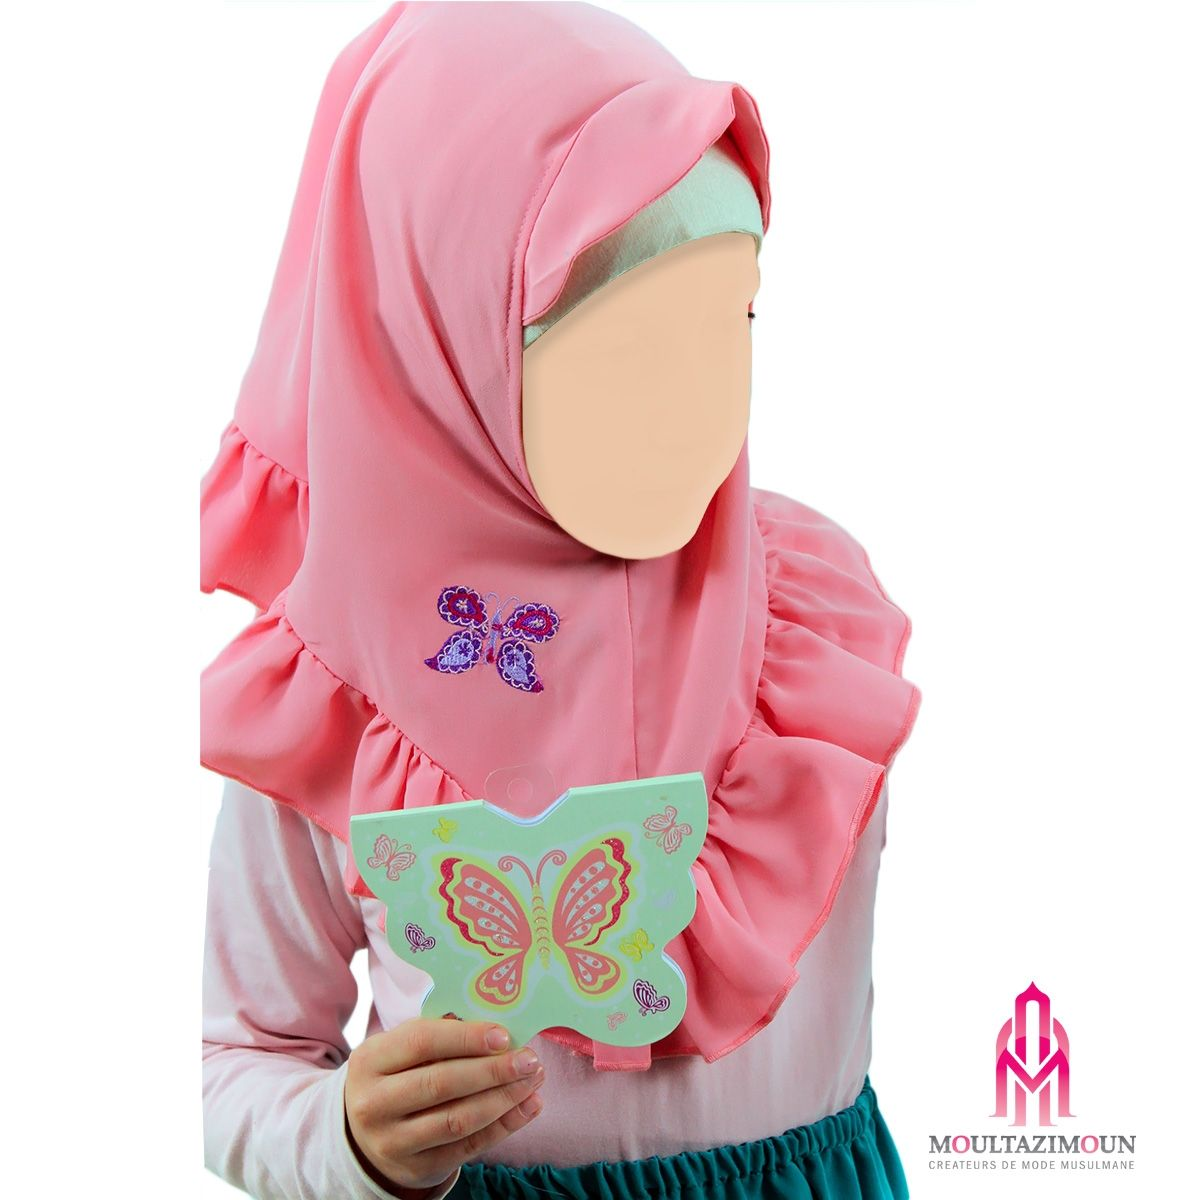 Hijab Papillon Enfant Boutique Muslim Kids Girl Jilbab